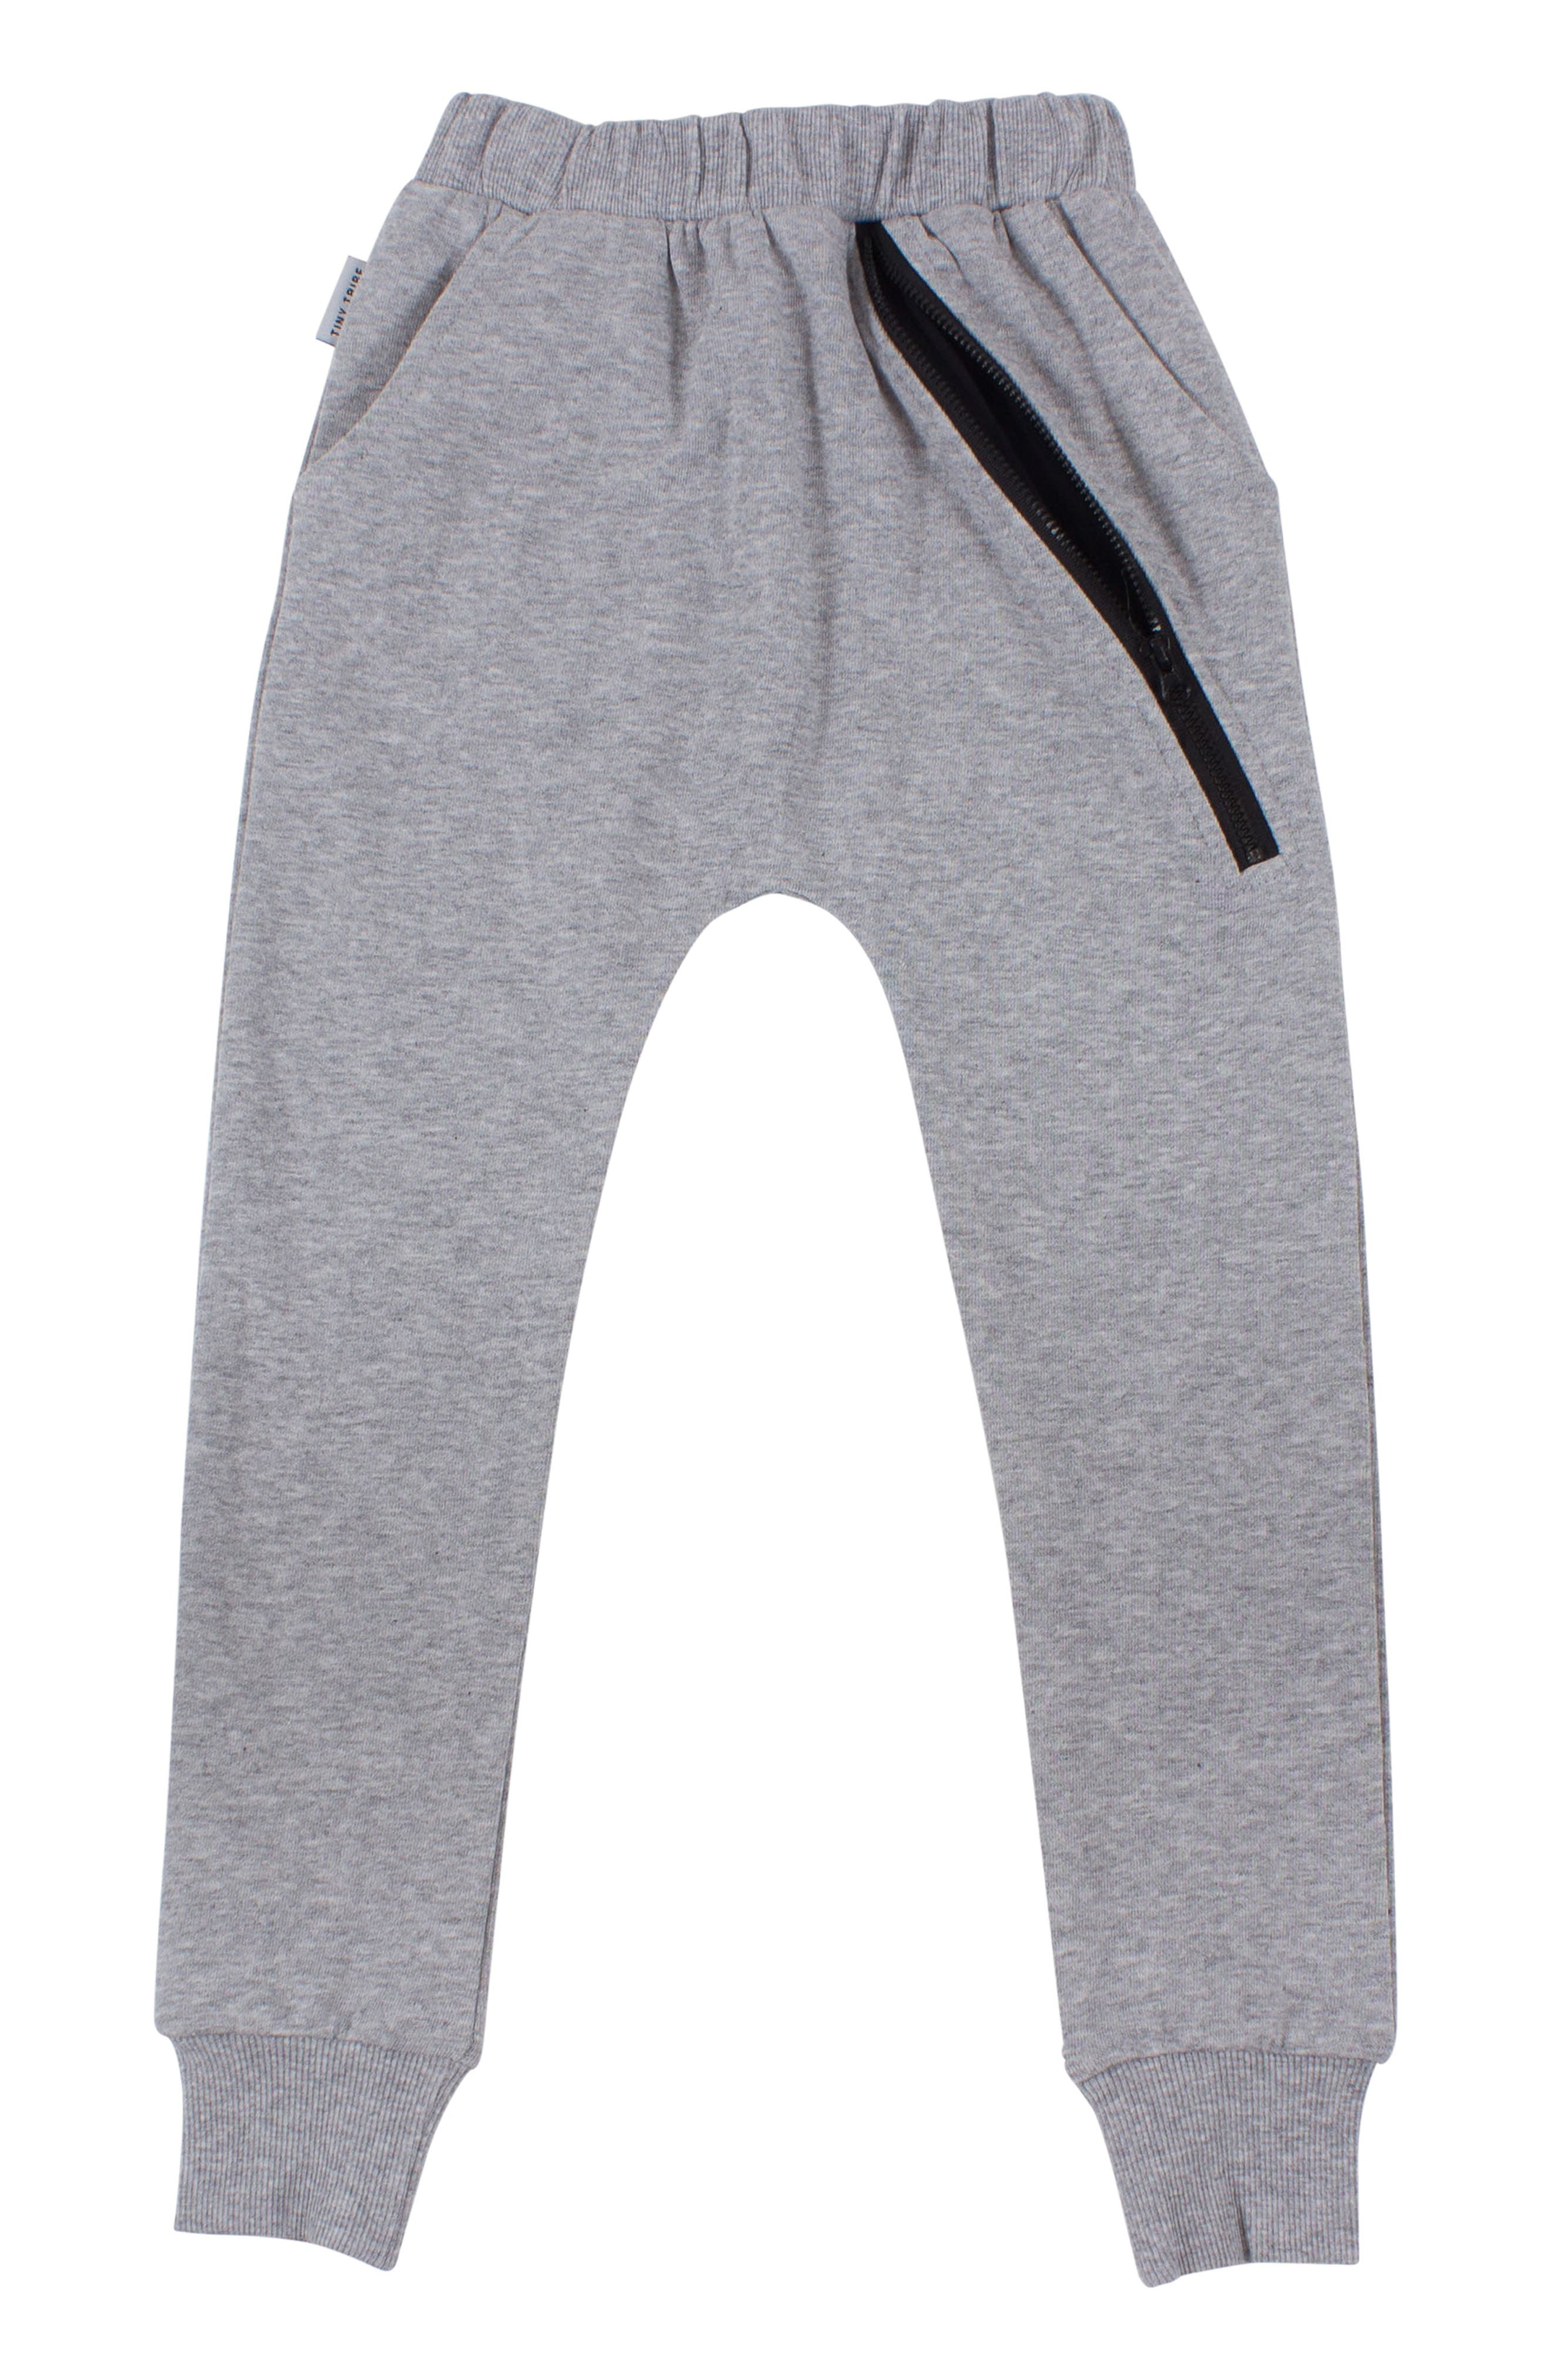 Zip Sweatpants,                             Main thumbnail 1, color,                             020